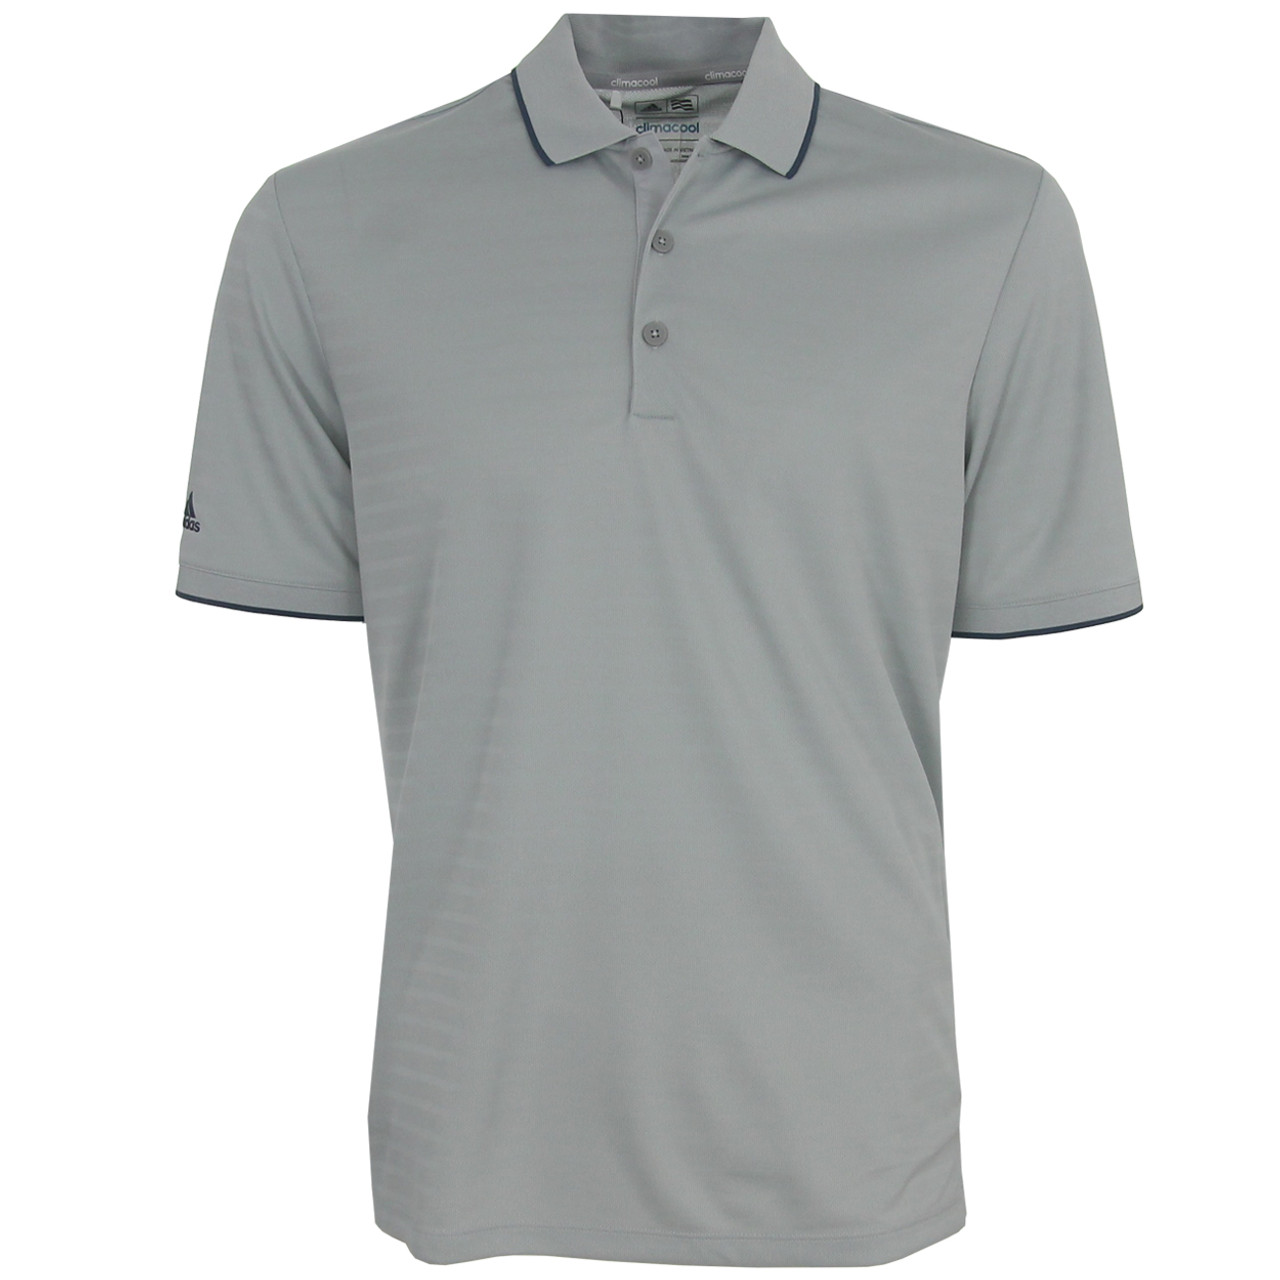 buy popular fb2bc 05c24 Adidas ClimaCool Tipped Club Polo Shirt